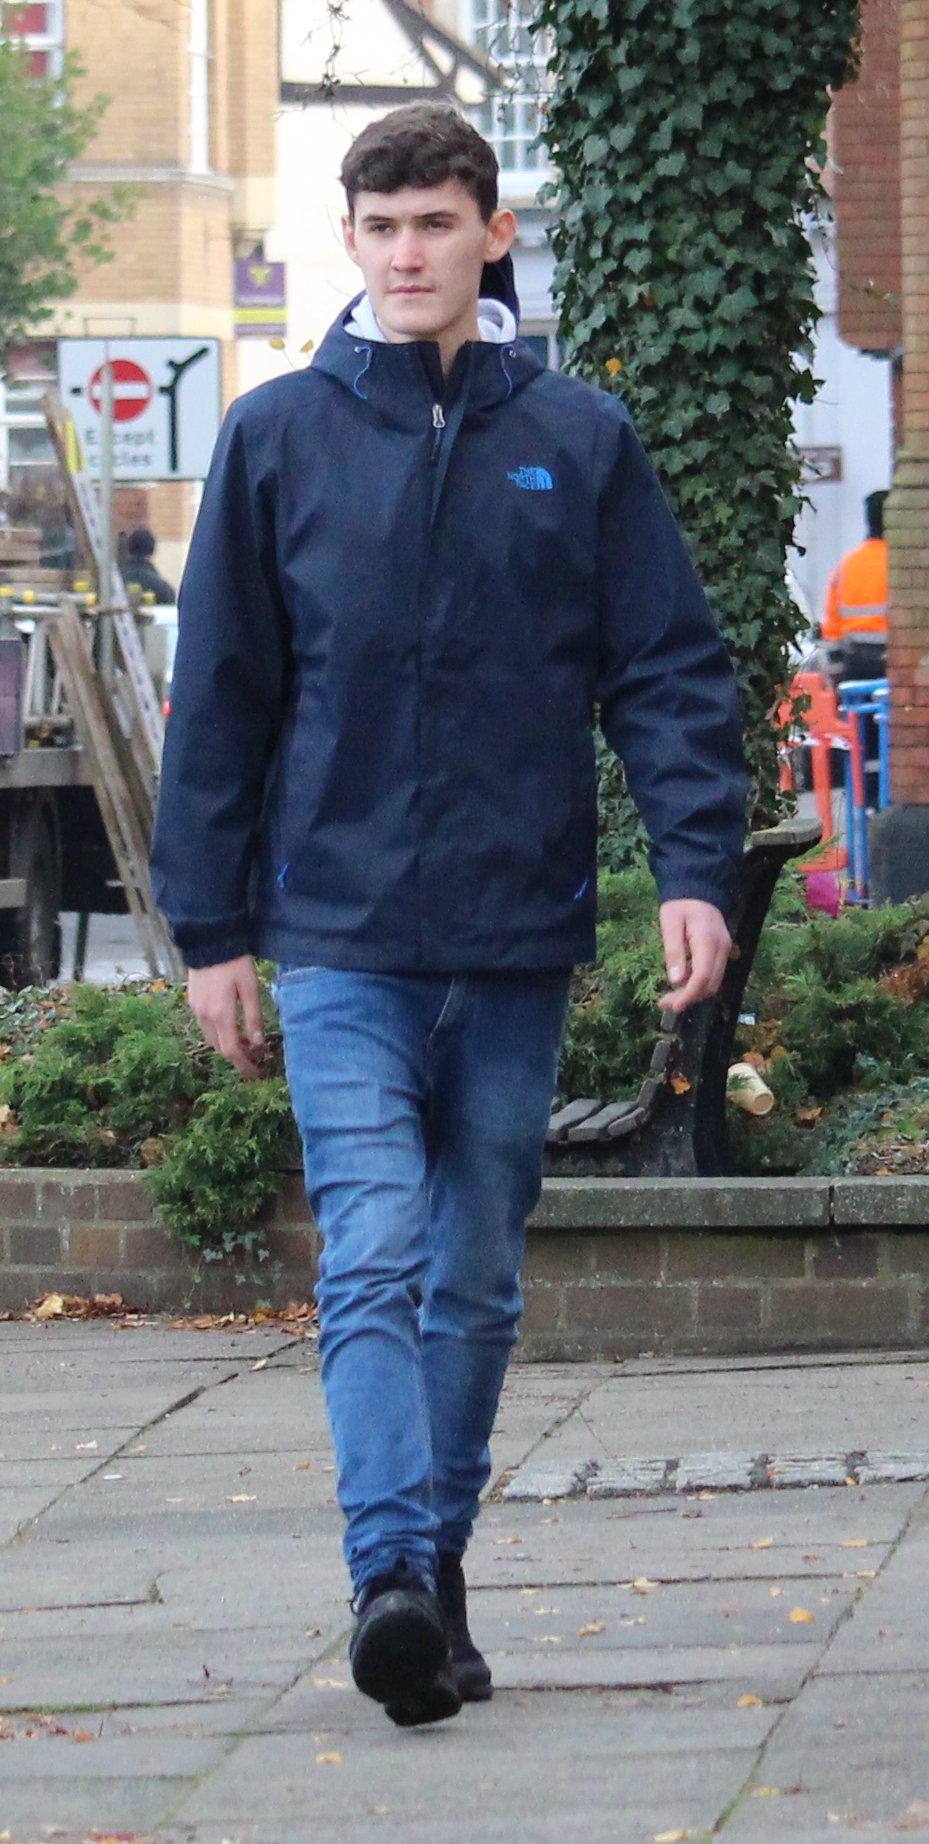 EAST ANGLIA NEWS SERVICE, tel. 07767 413379 Cohan Semple, 18, arriving at Suffolk magistrates court in December before being sentenced for his part in the flour and eggs attack on a vulnerable woman in Bury St Edmunds, Suffolk